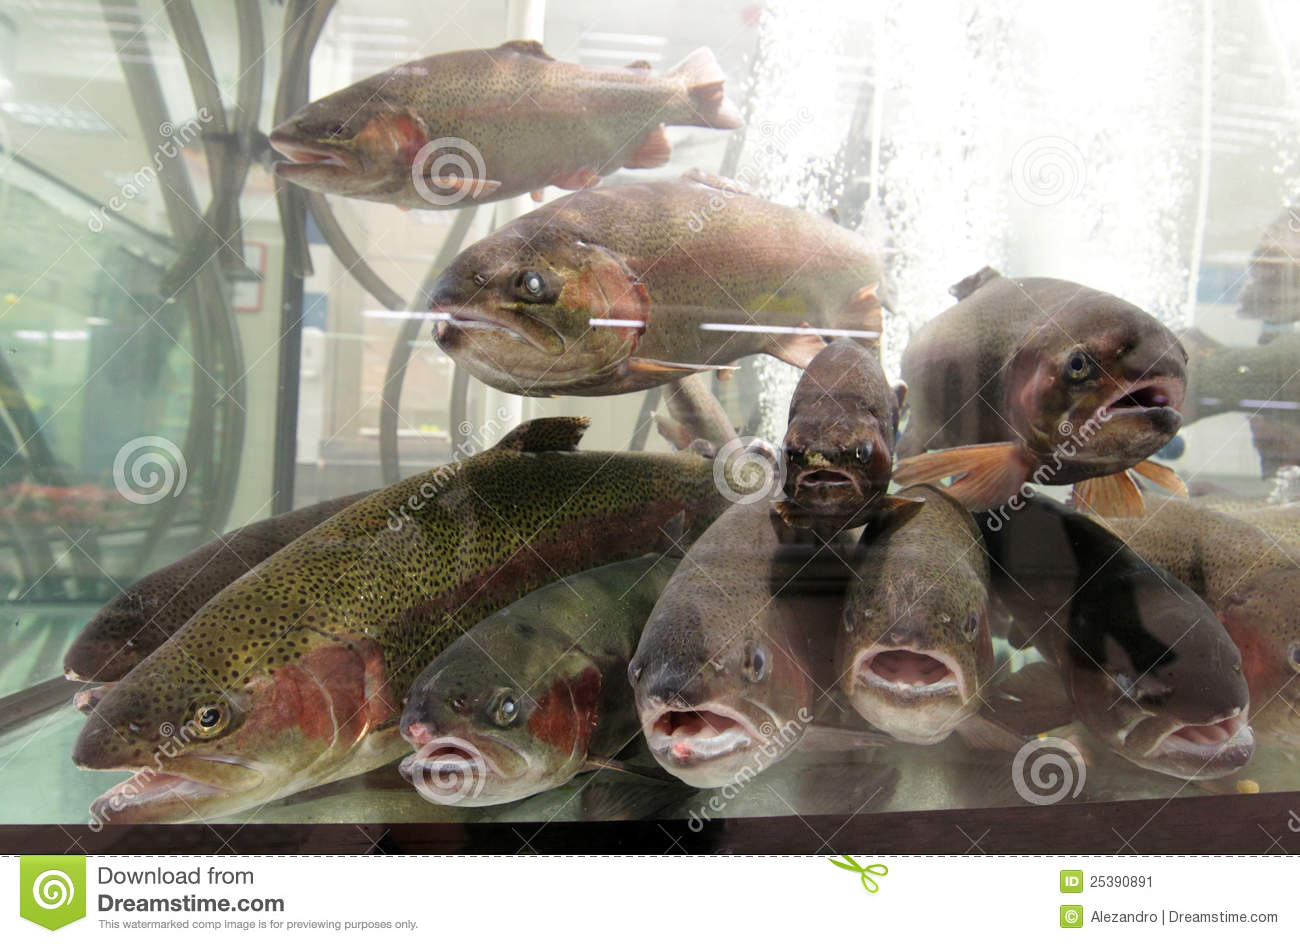 Live aquarium trout fish for sale stock image image for Live fish for sale online